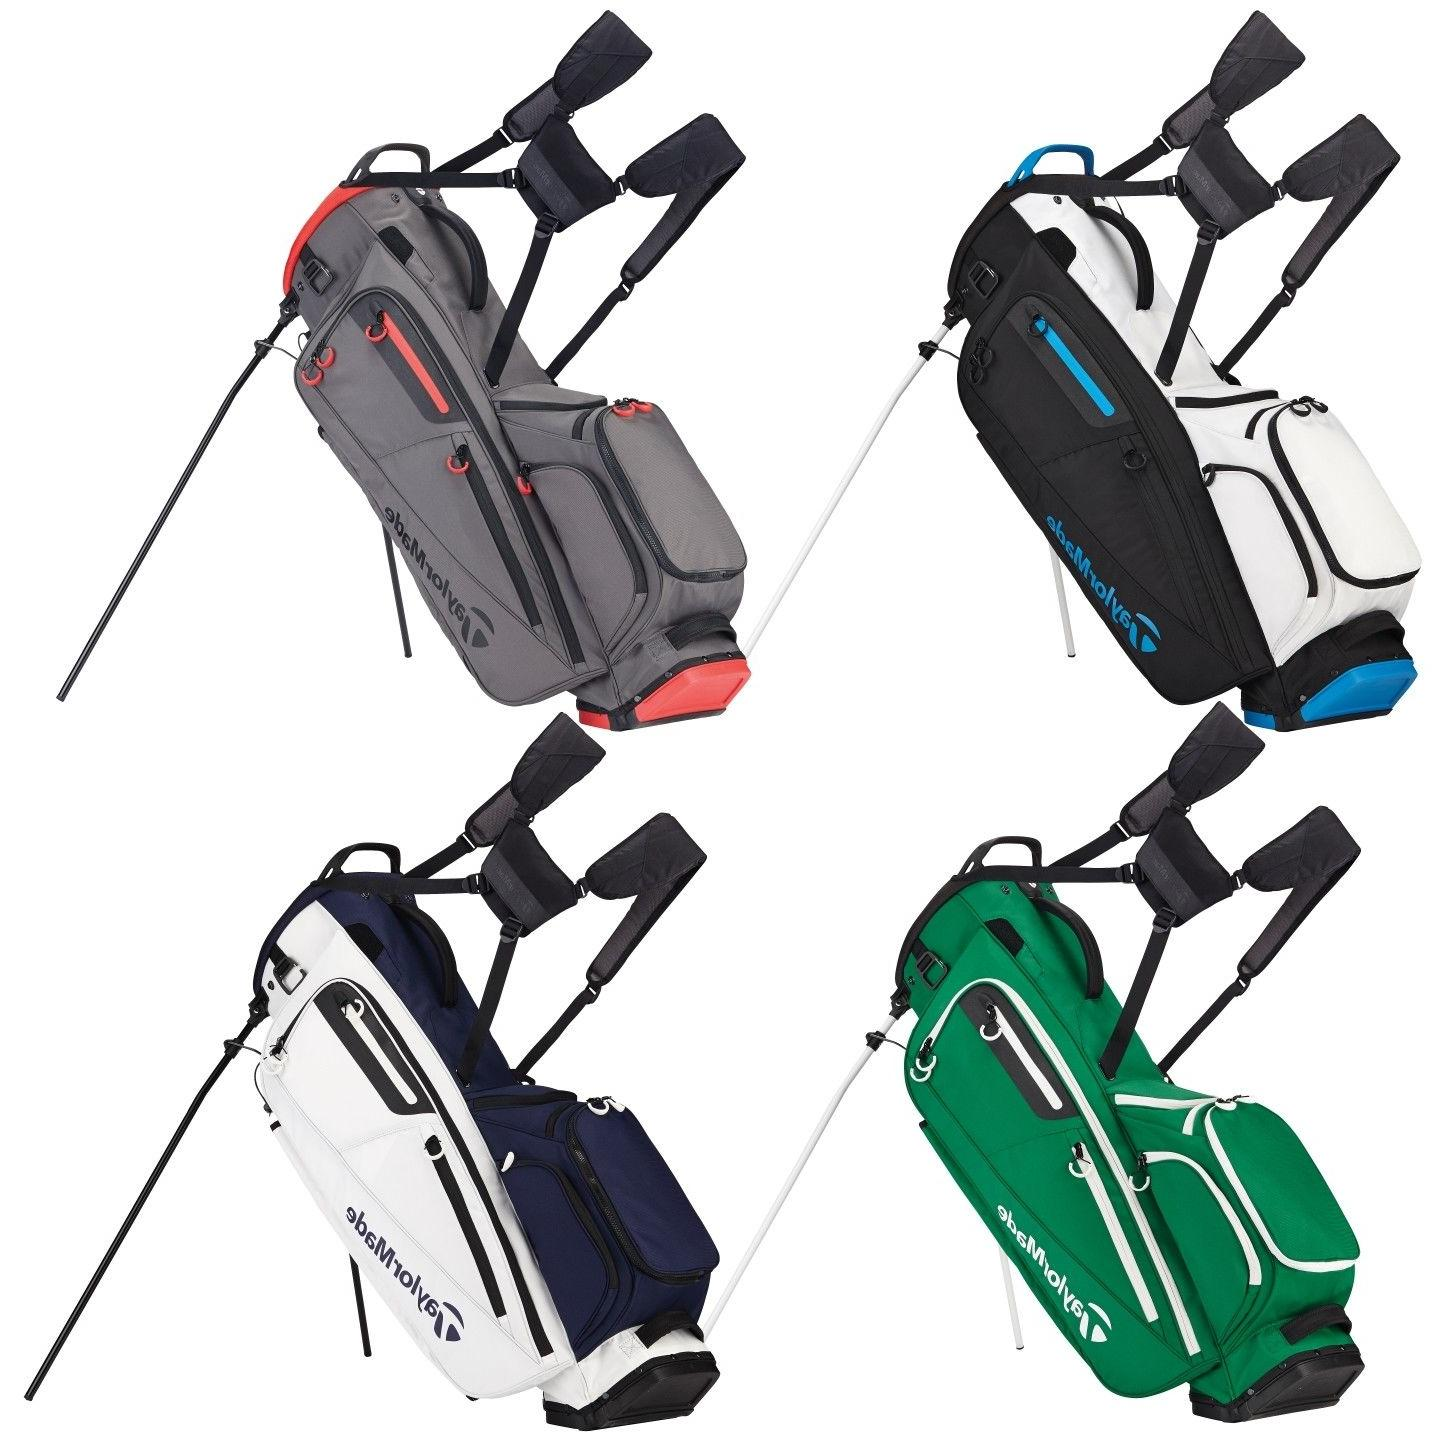 new 2018 flextech stand bag pick your